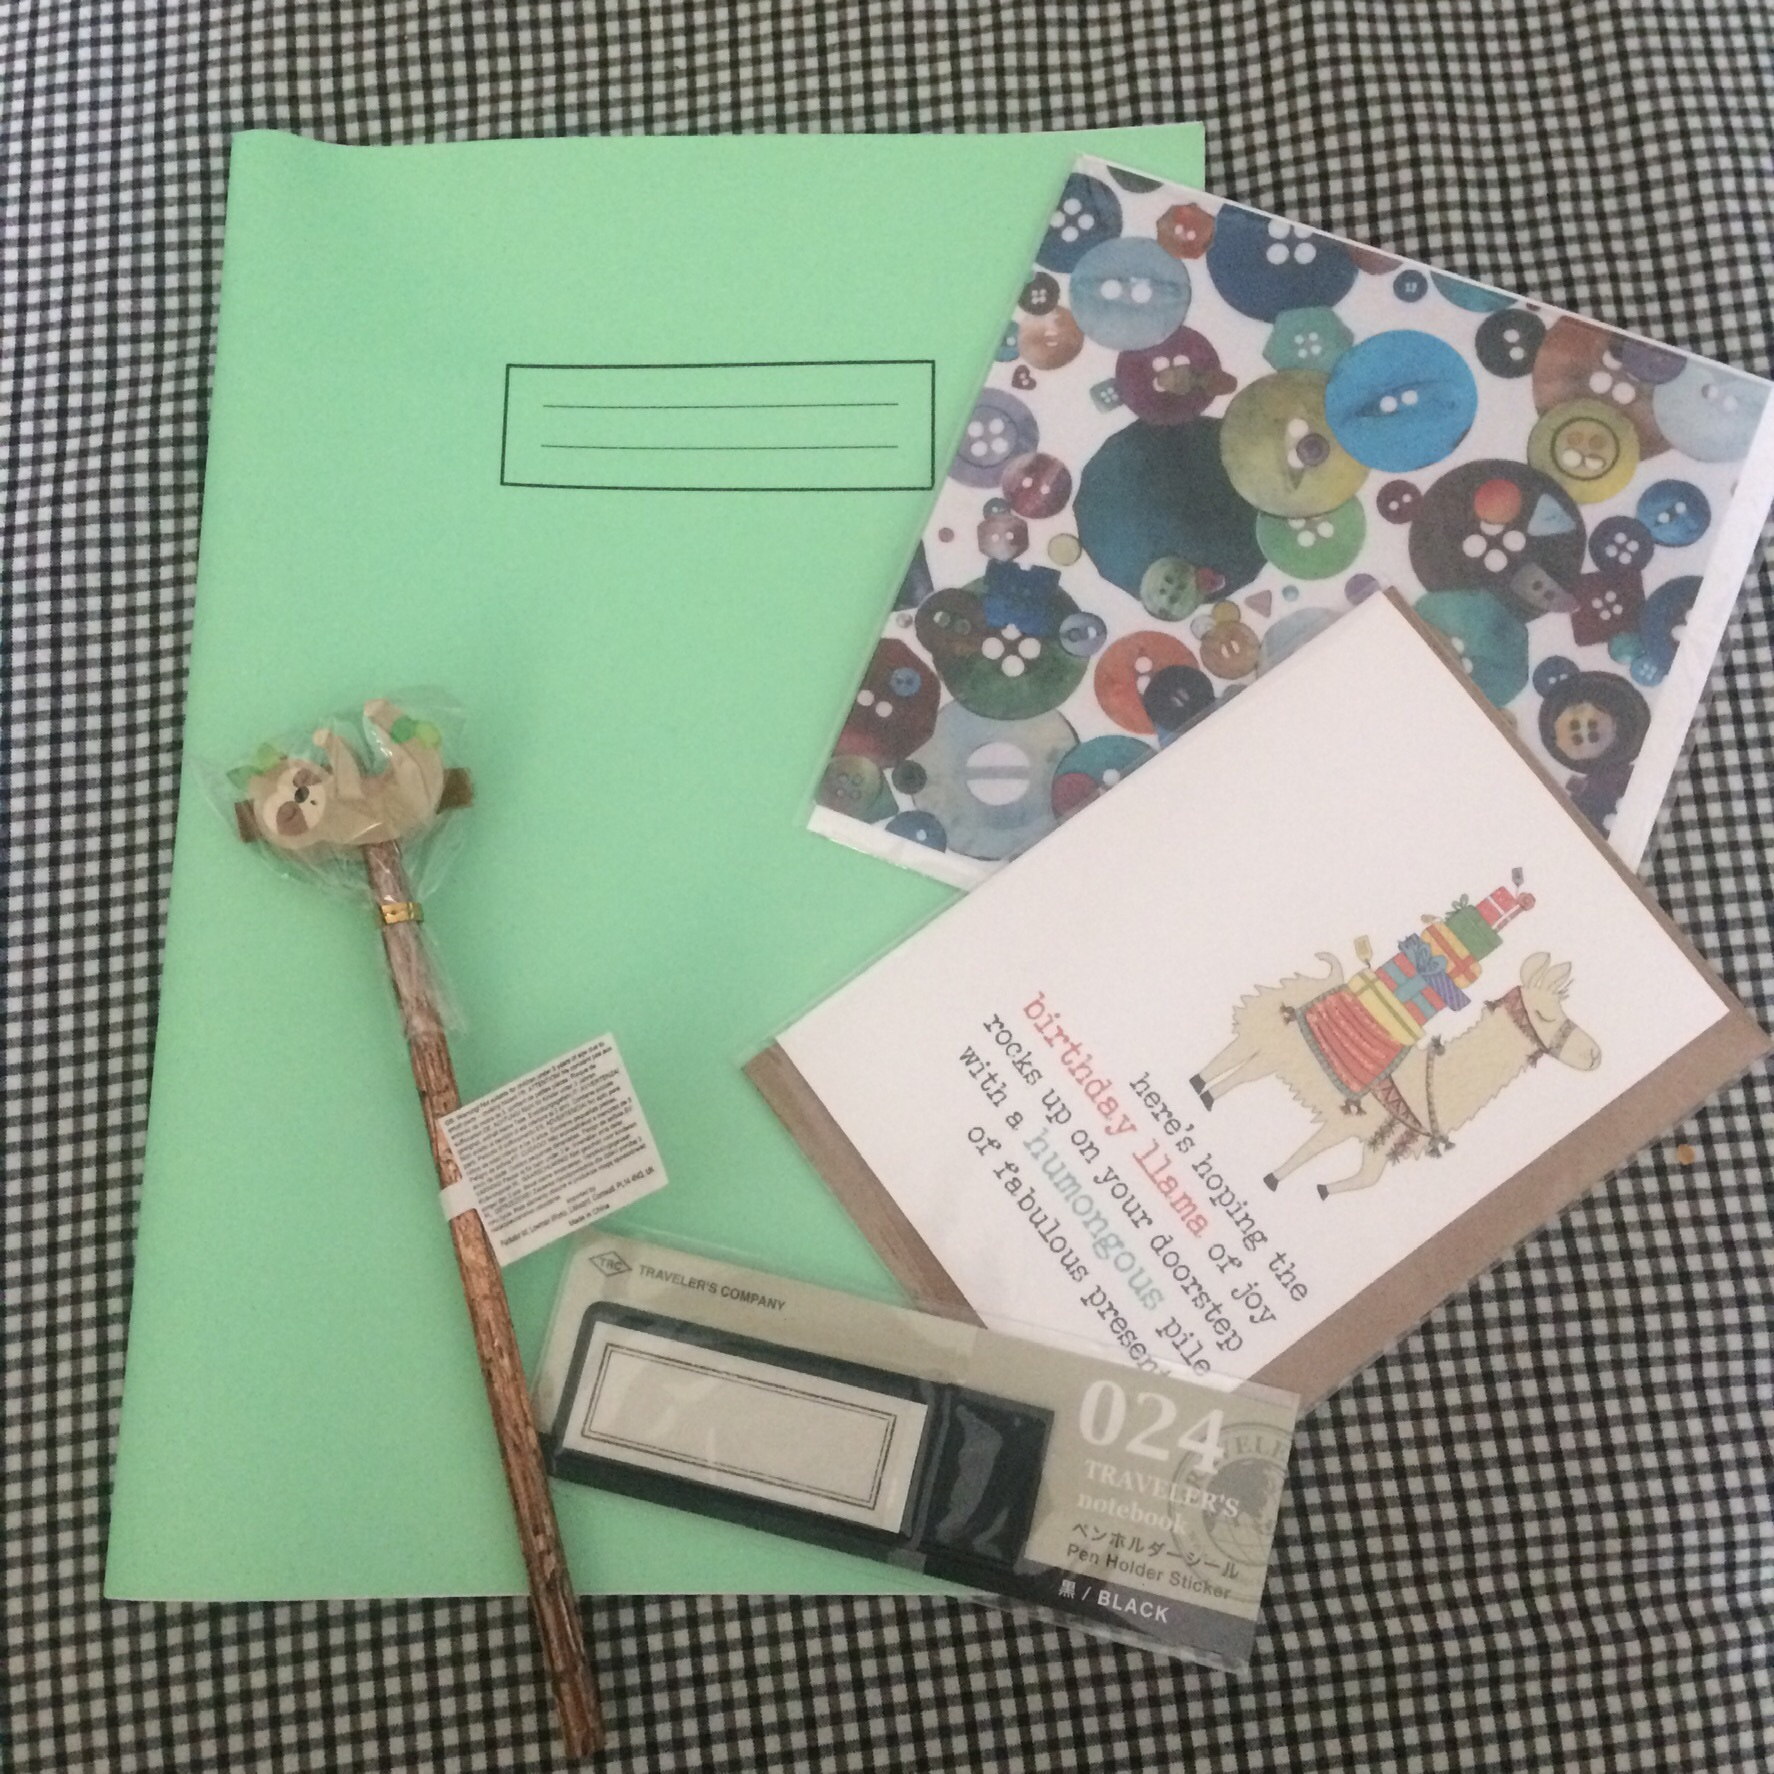 Stationery subscription box contents from Ink Drops inkdrops.co.uk September 2019